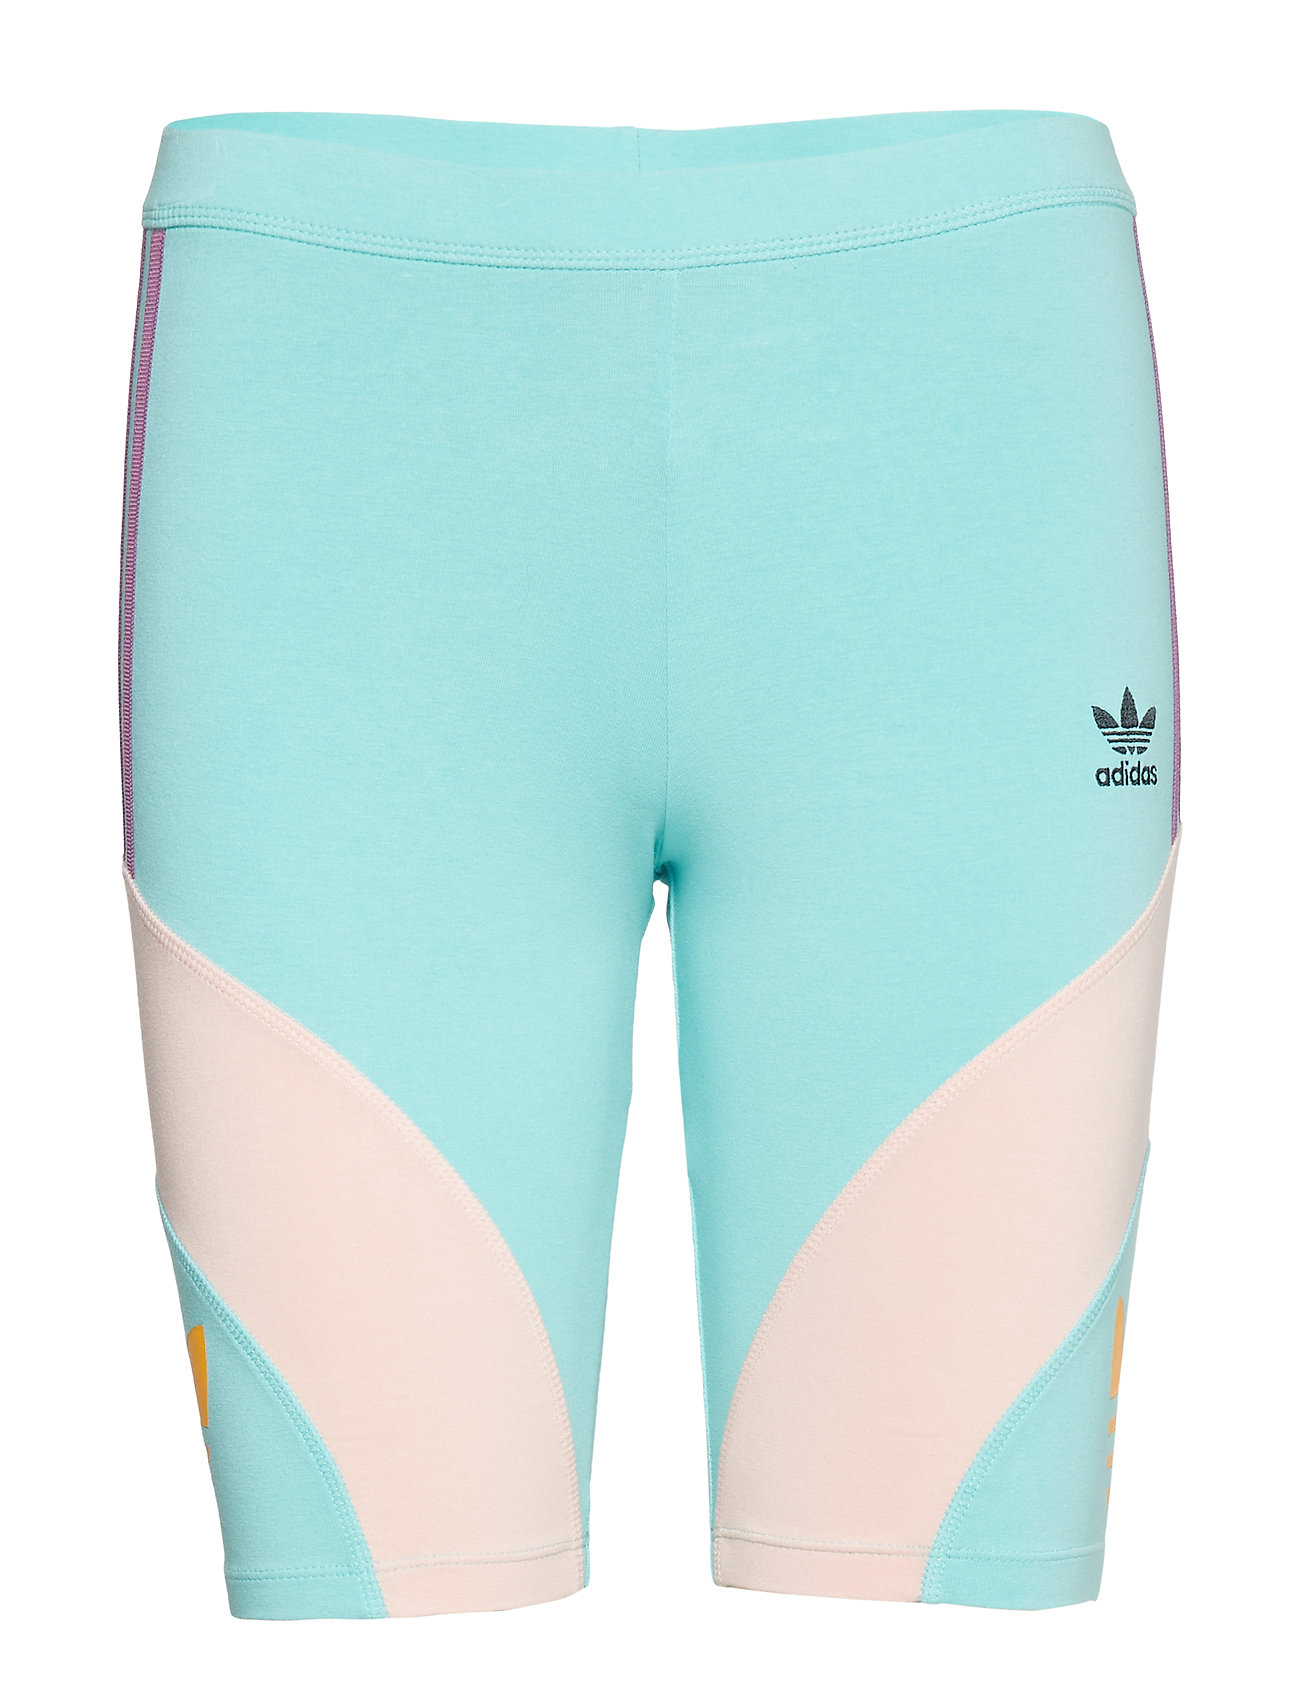 adidas Originals CYCLING SHORTS - EASMIN